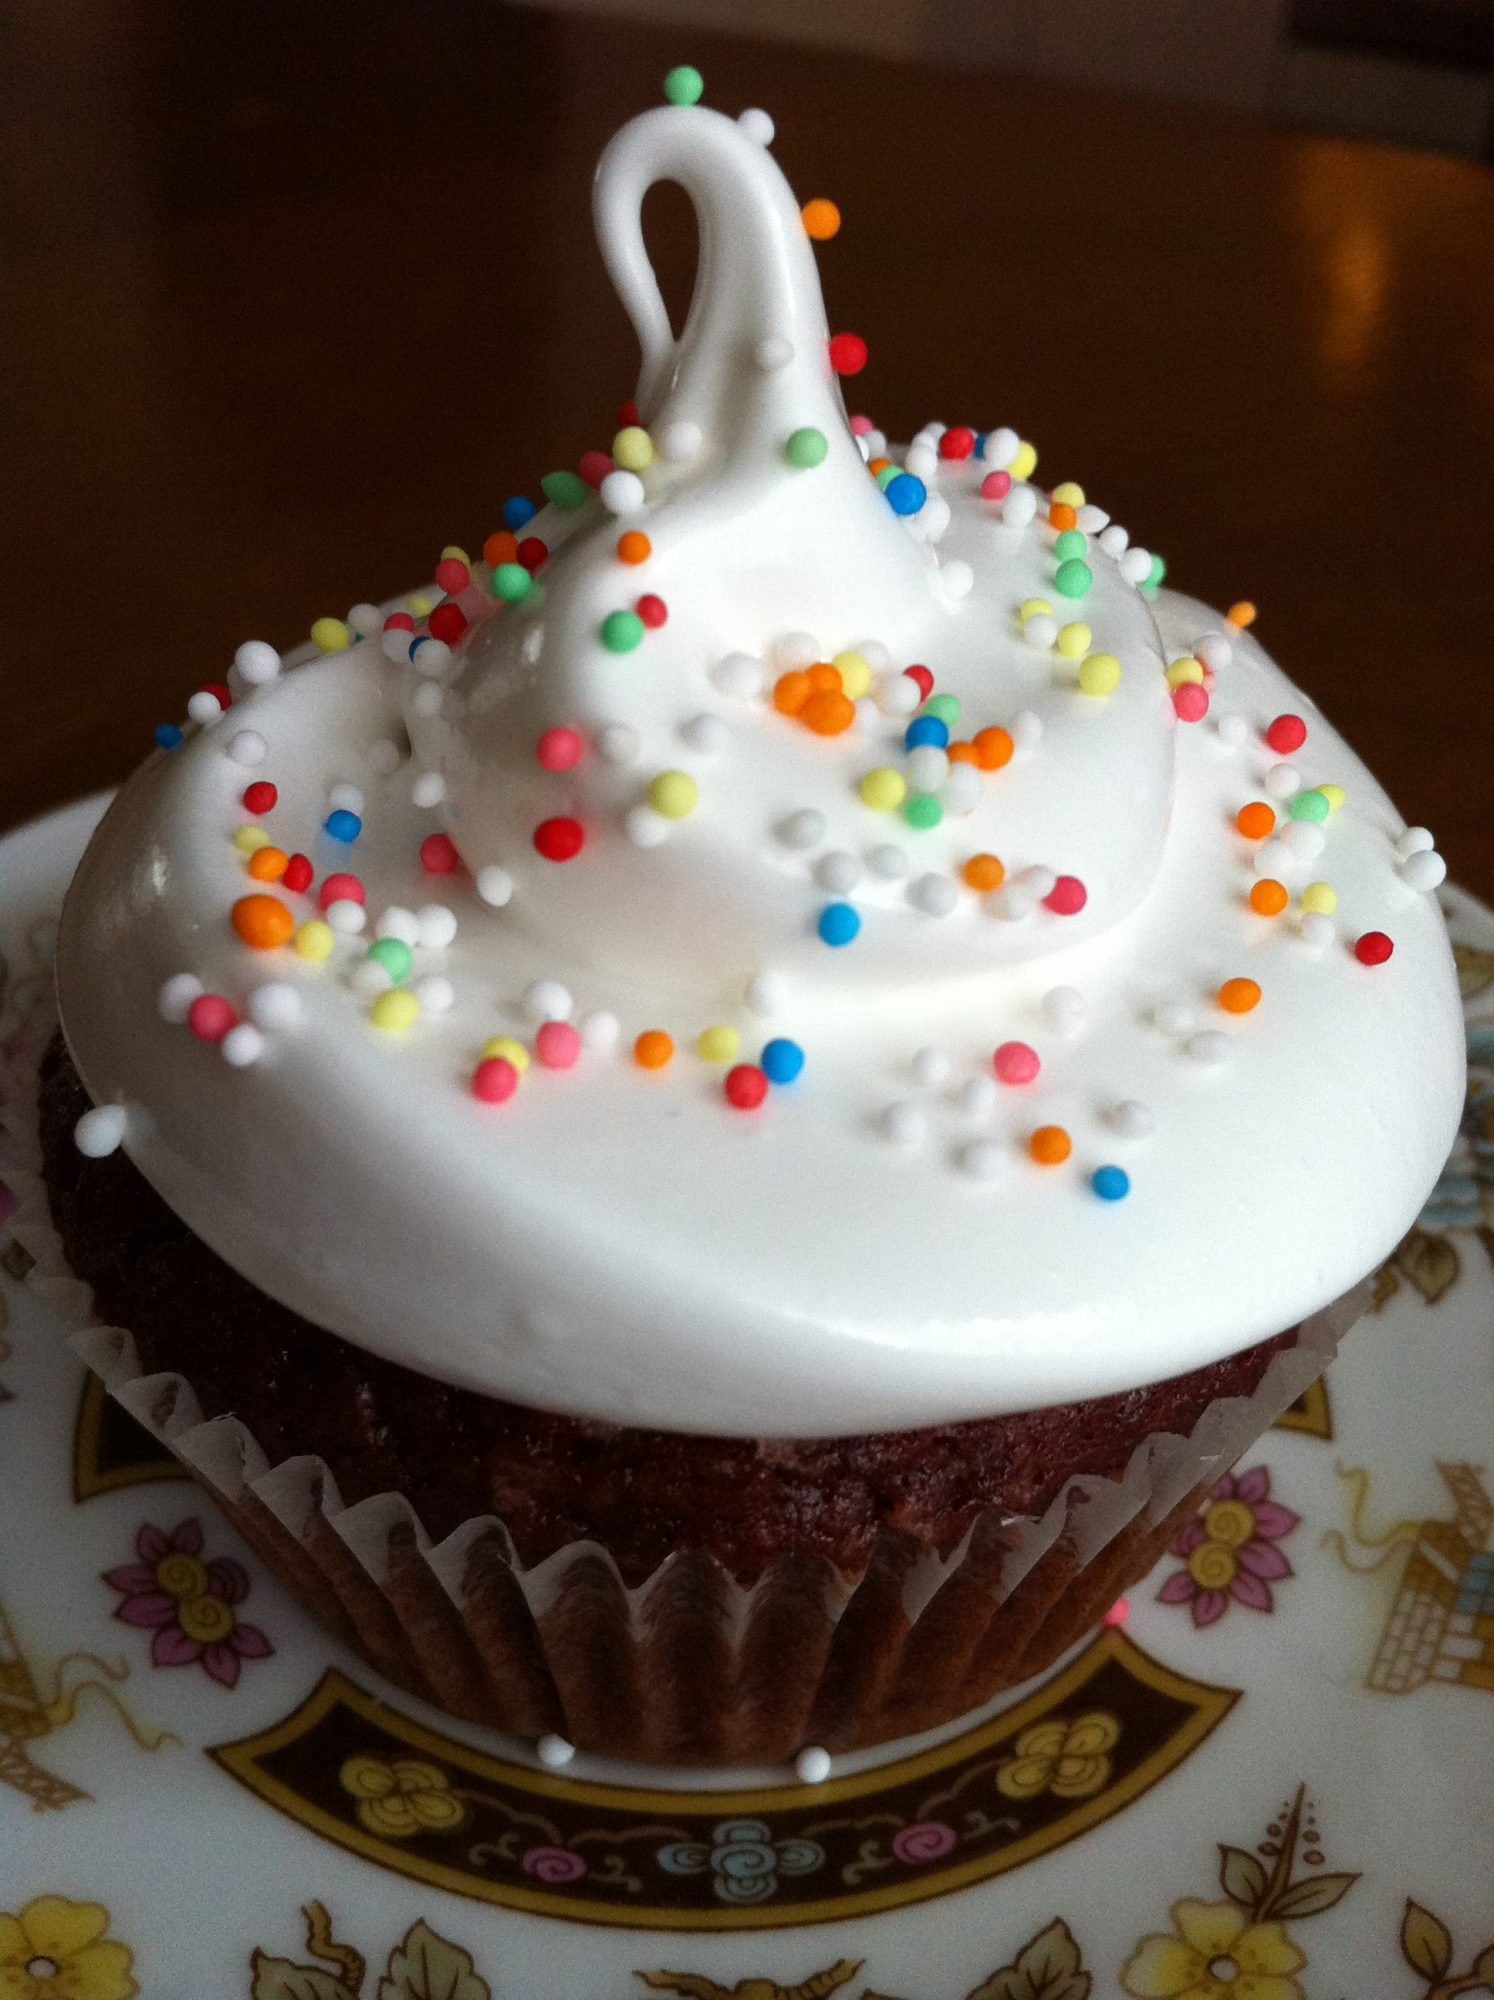 Shiny white frosting on a cupcake with colorful sprinkles